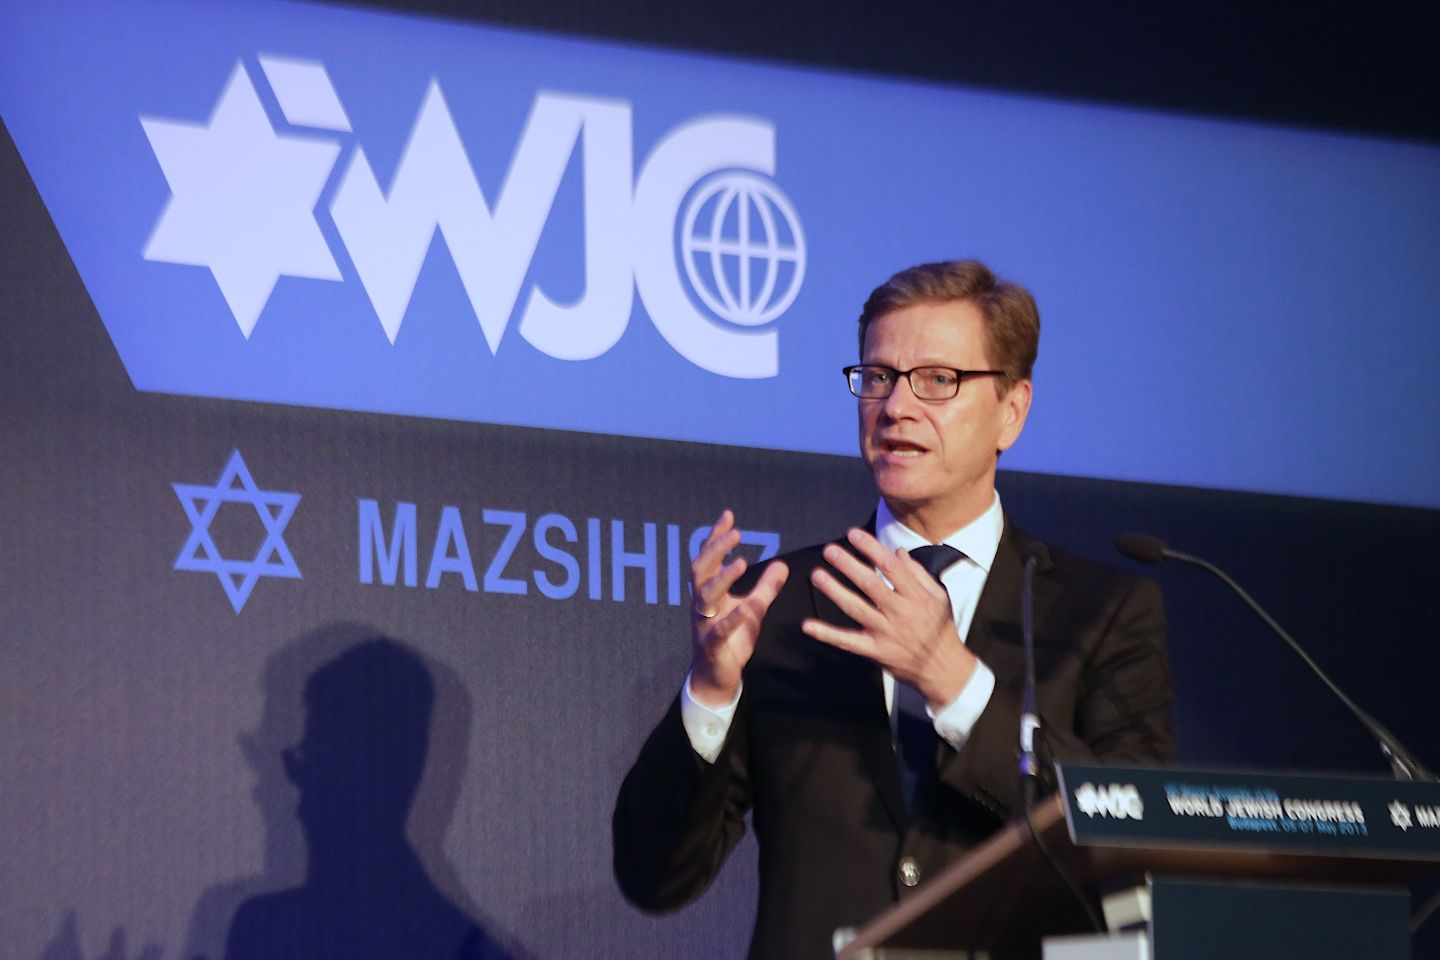 German FM Guido Westerwelle at WJC Assembly